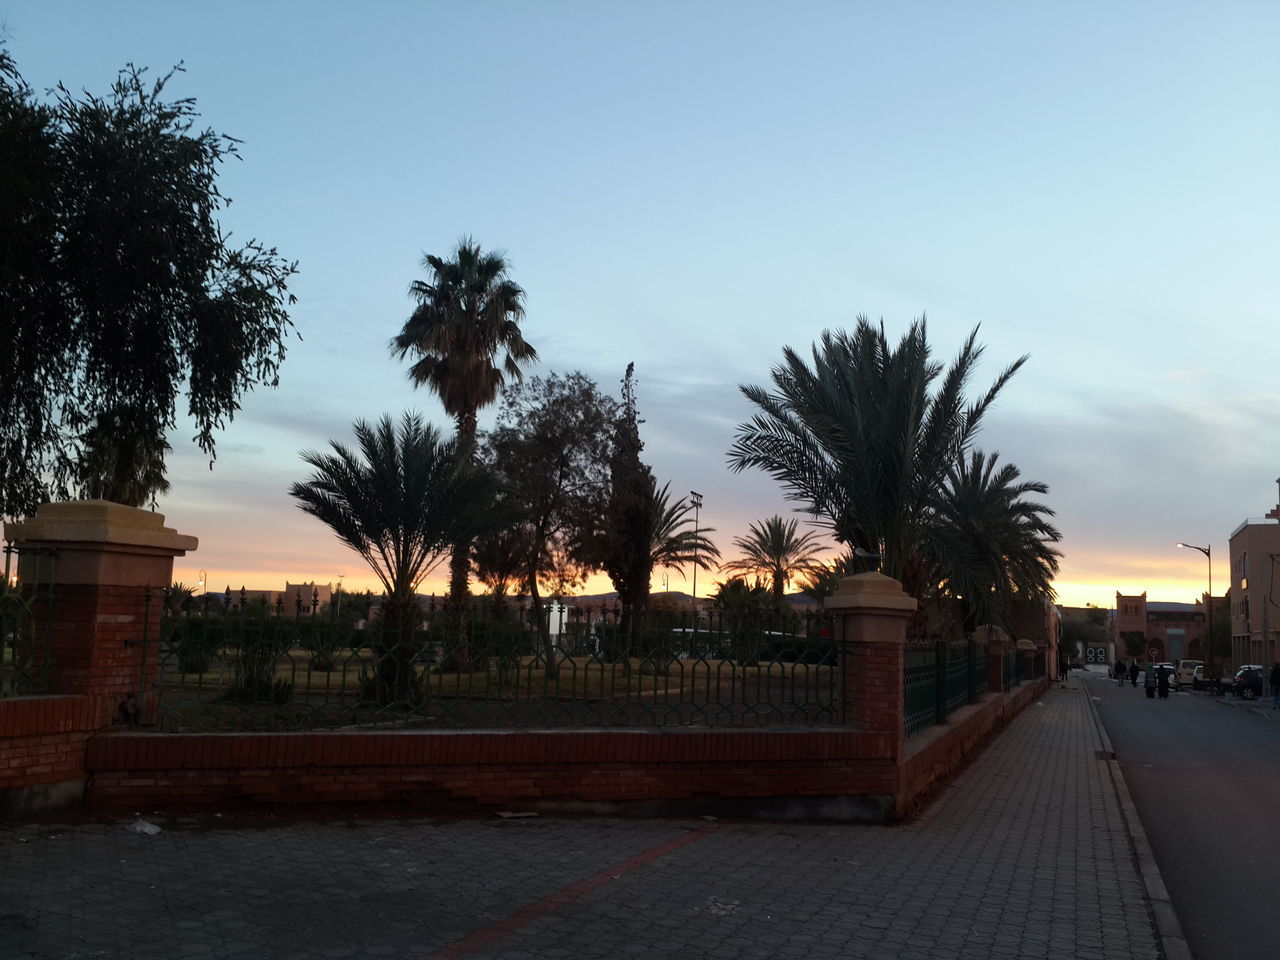 tree, outdoors, sky, palm tree, architecture, building exterior, clear sky, no people, water, sunset, nature, day